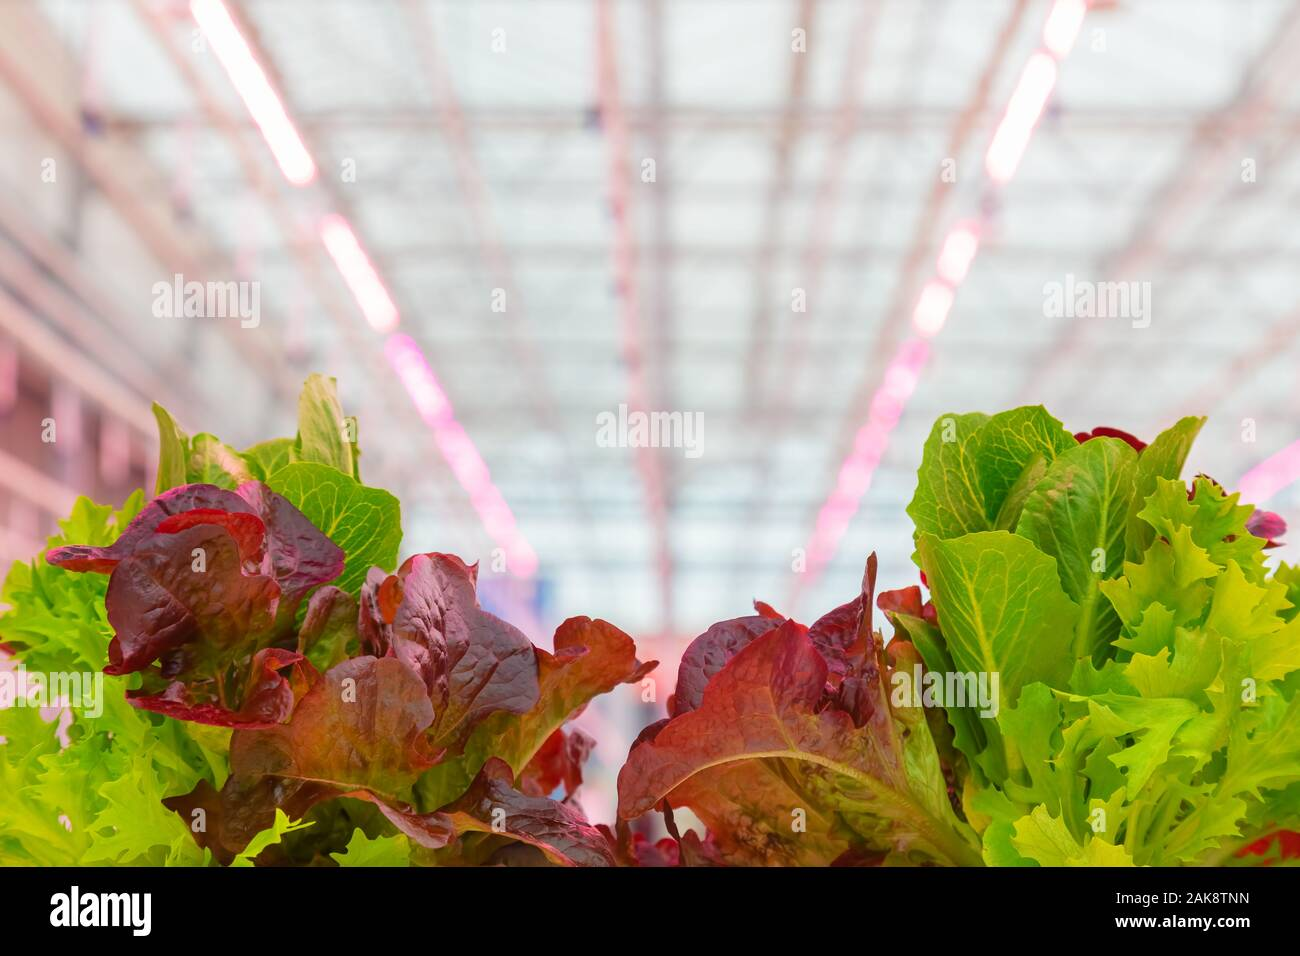 Professional growth of lettuce with pink led lighting in a Dutch greenhouse Stock Photo